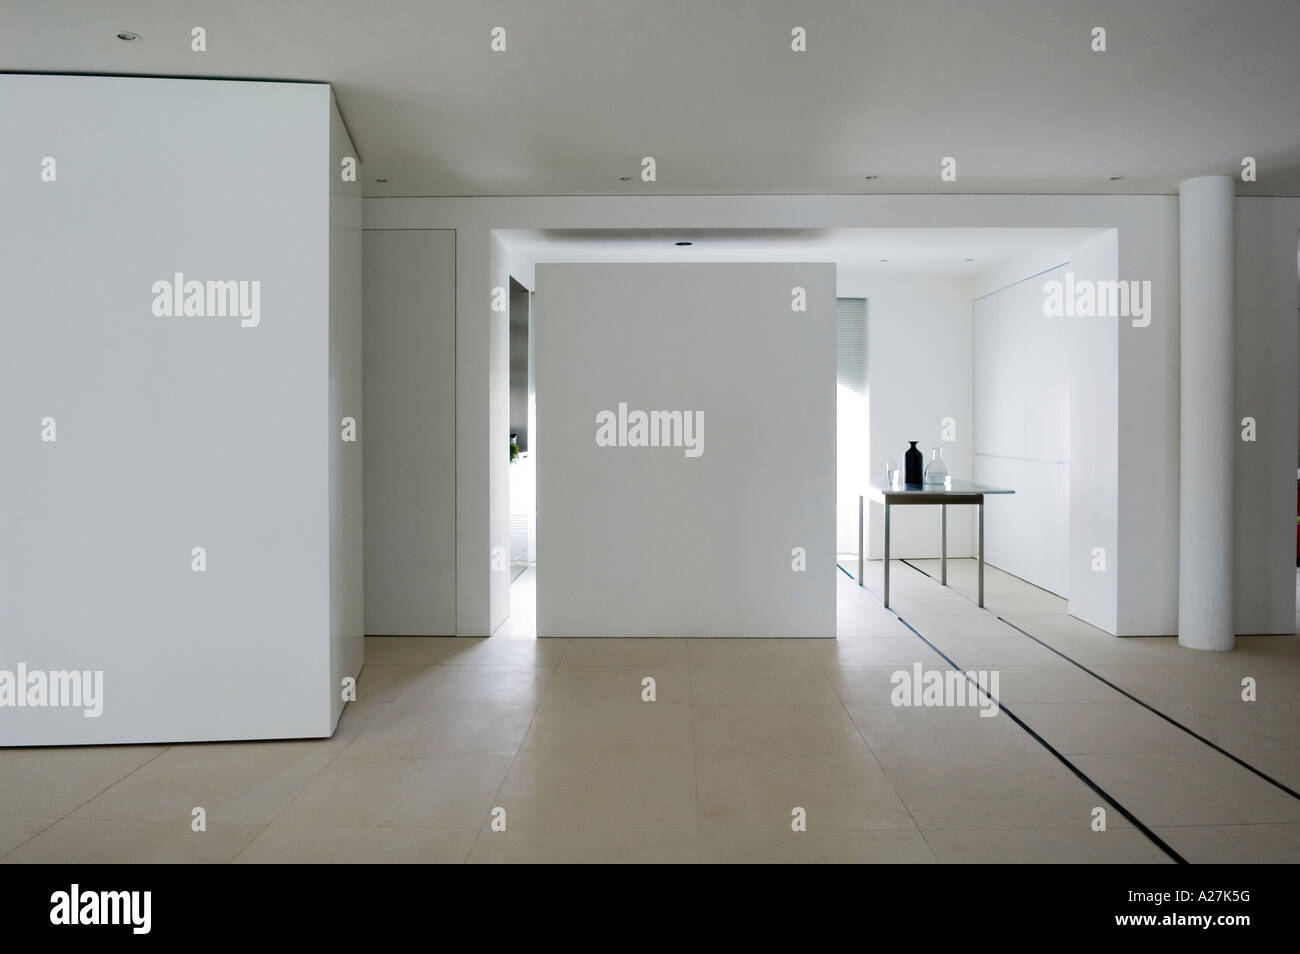 Interior of minimalist warehouse conversion with concealed screening - Stock Image